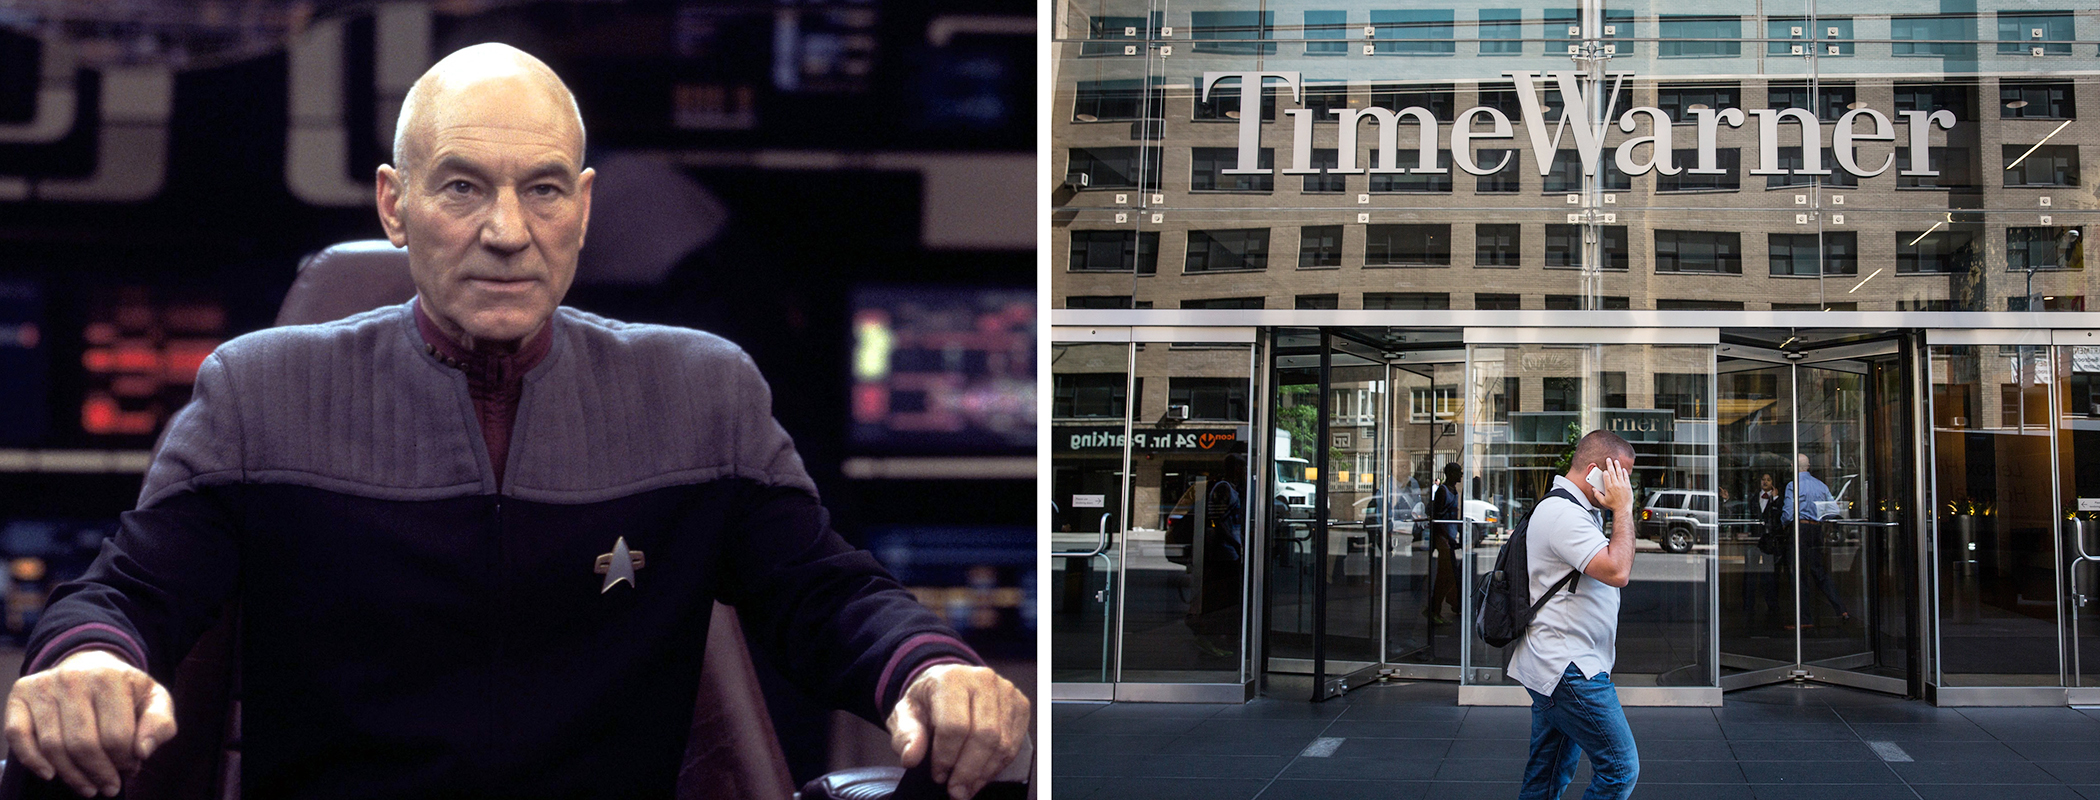 Patrick Stewart in Star Trek and Time Warner Cable exterior